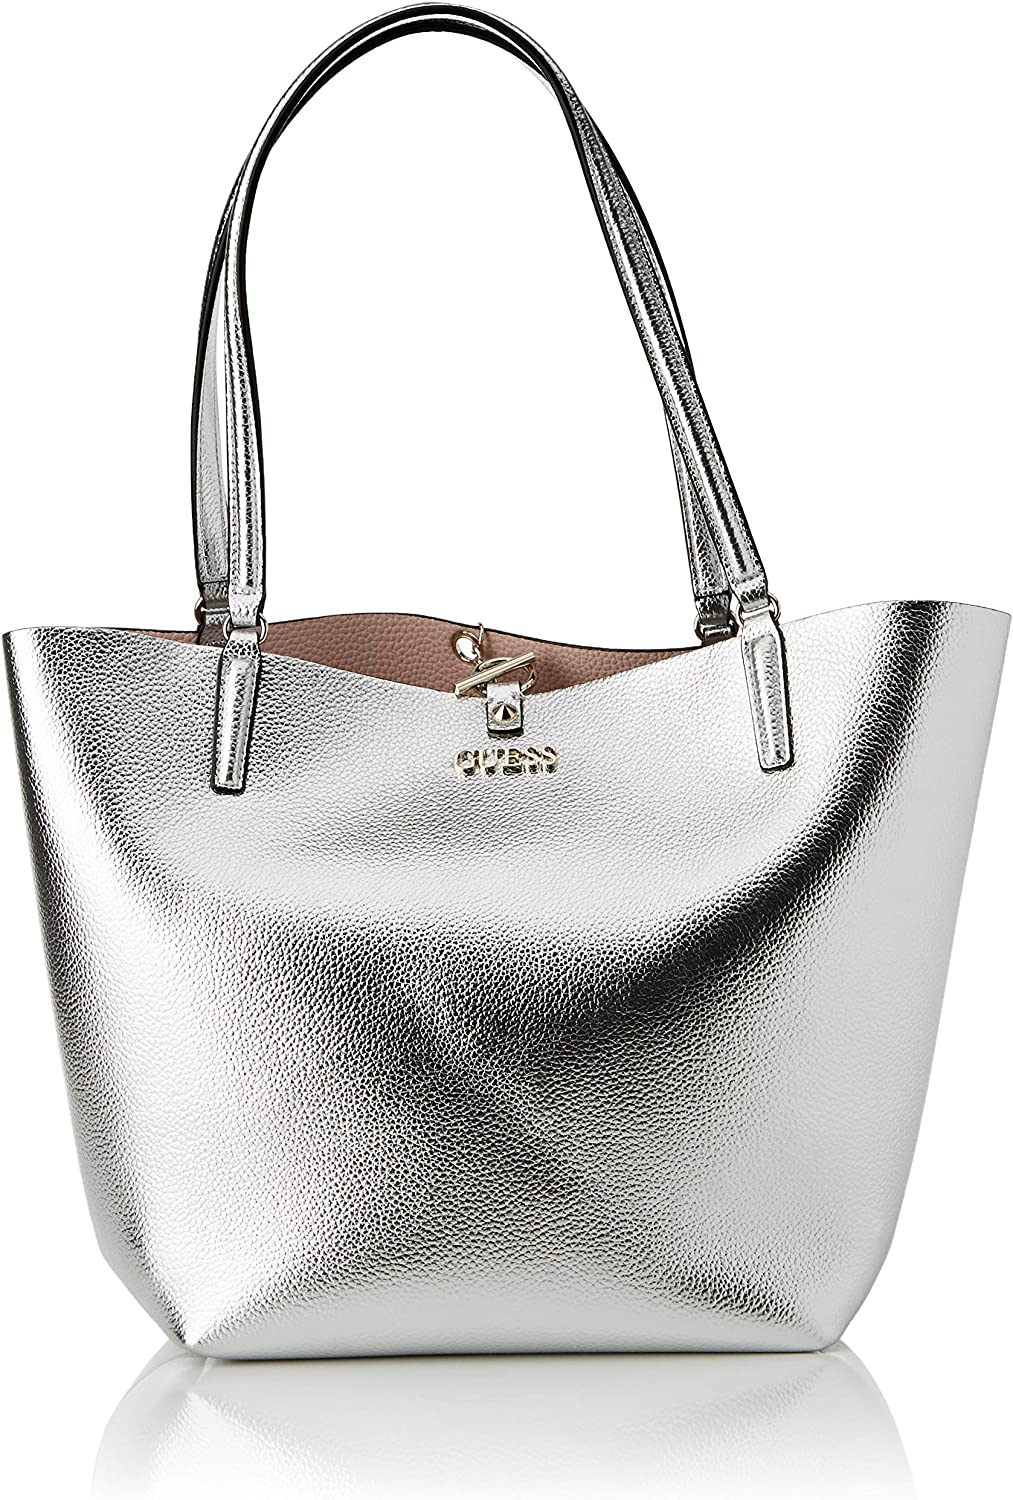 Guess Alby Toggle Tote Sacoches Femme Taille unique